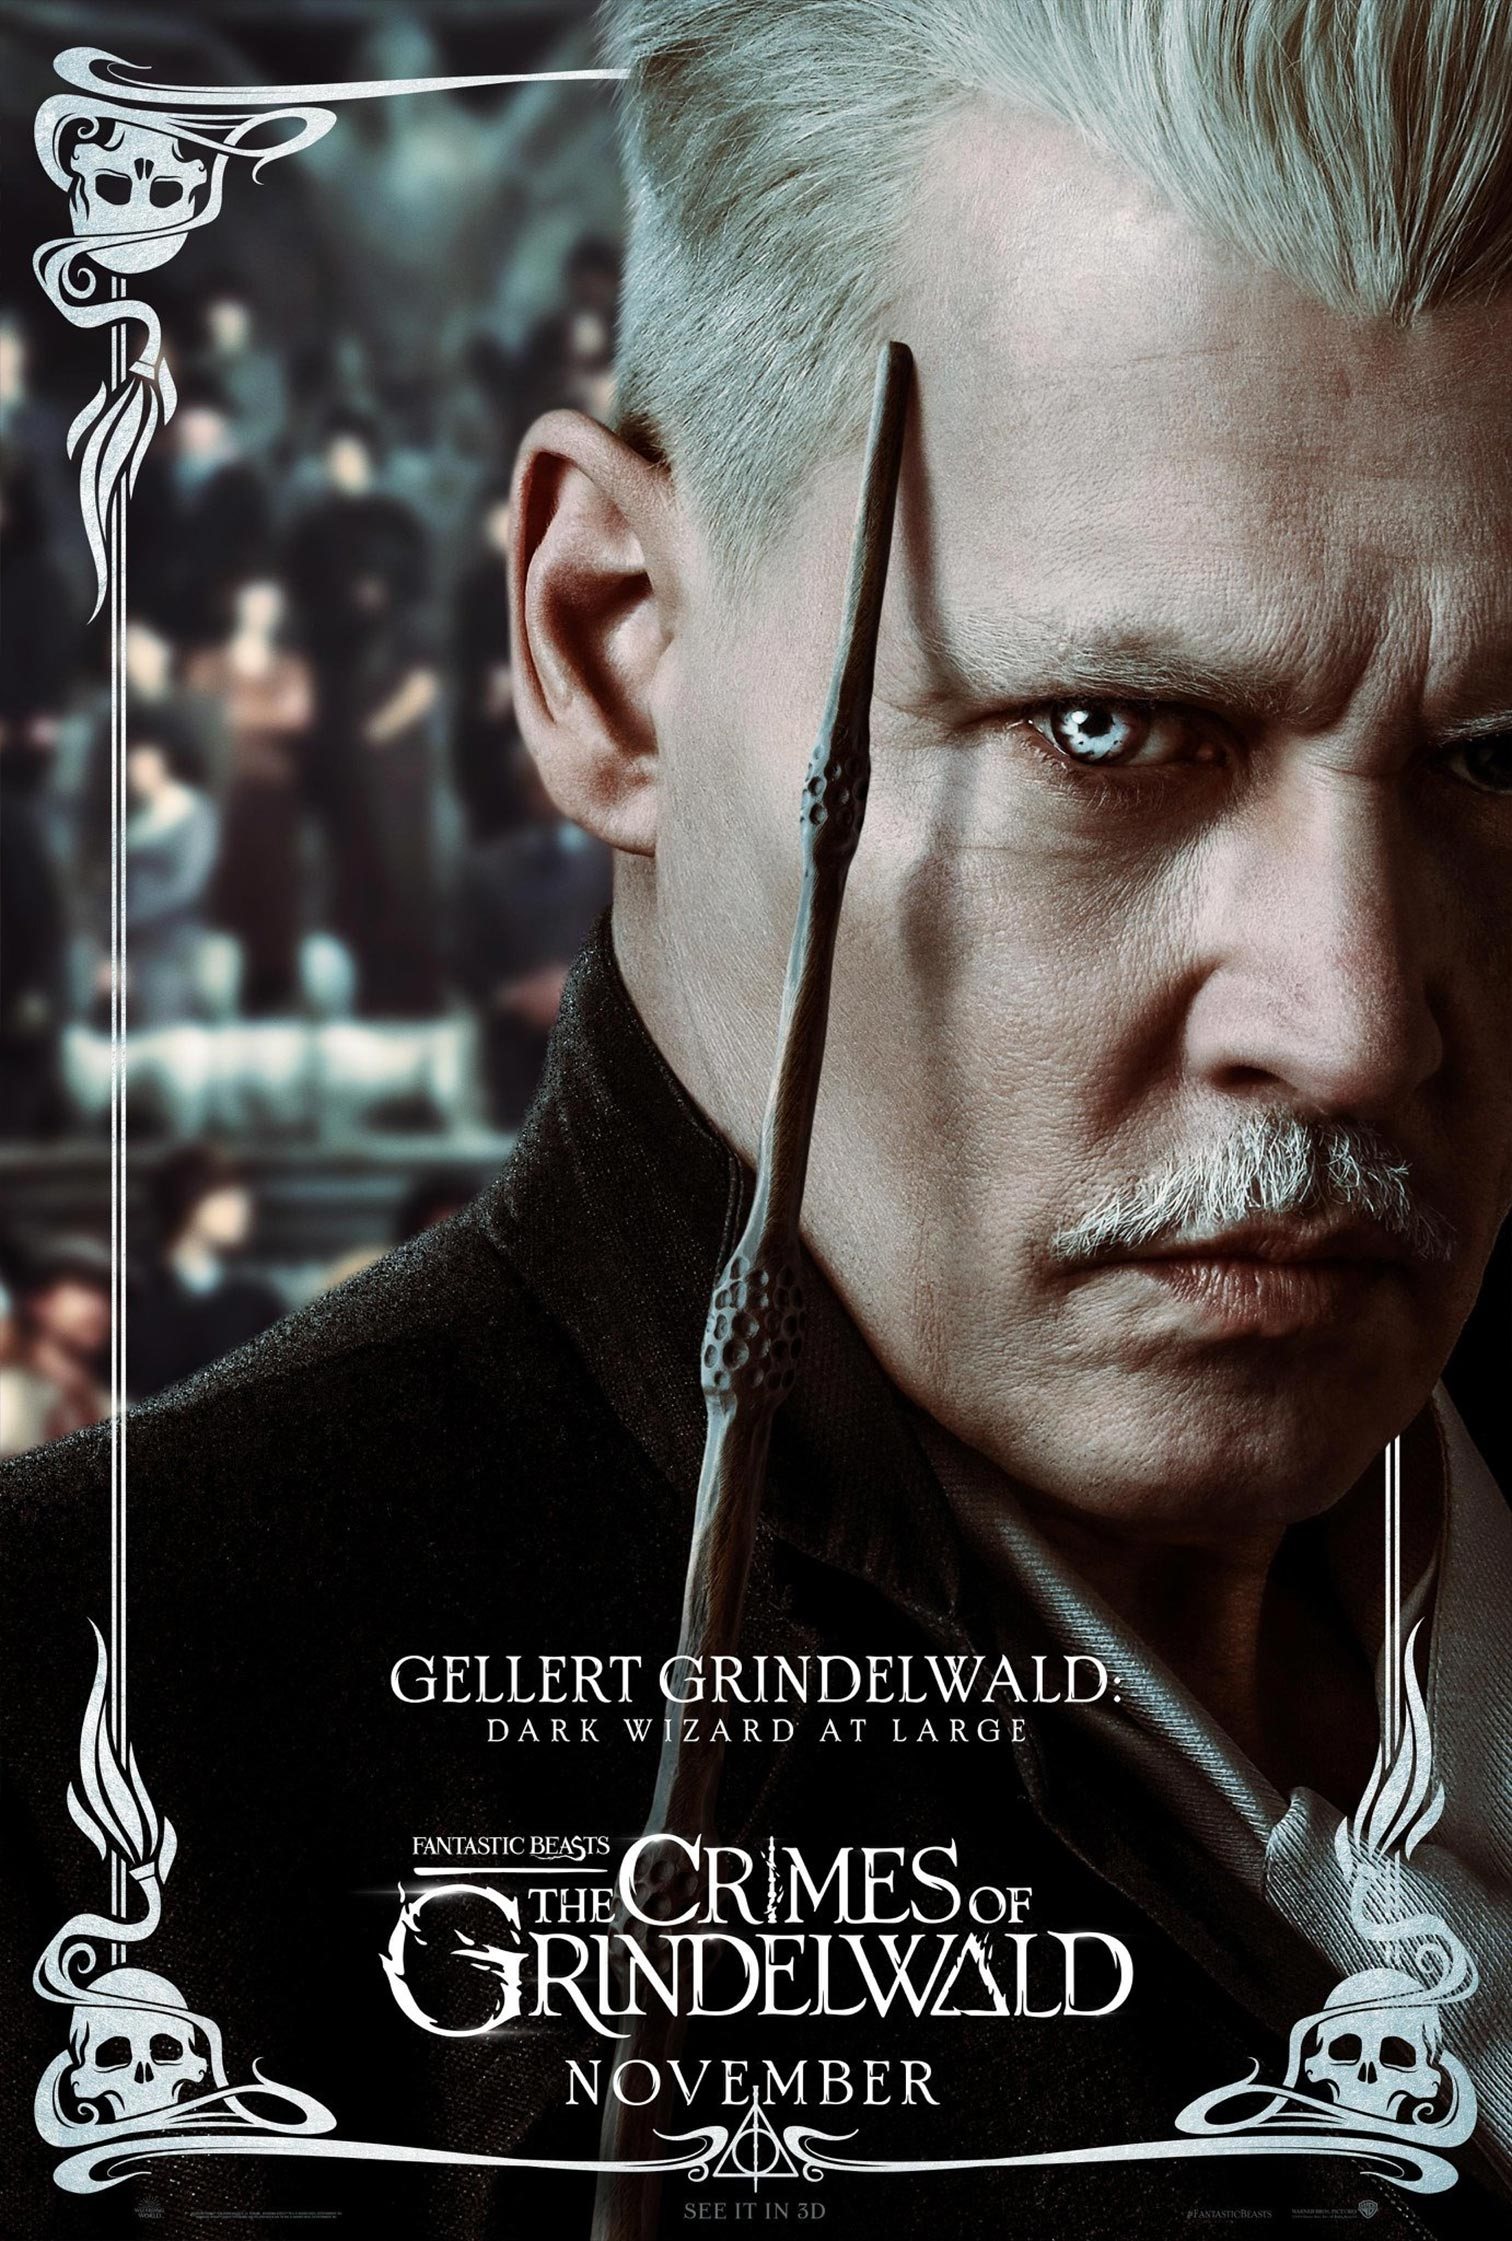 Fantastic Beasts: The Crimes of Grindelwald Poster #11